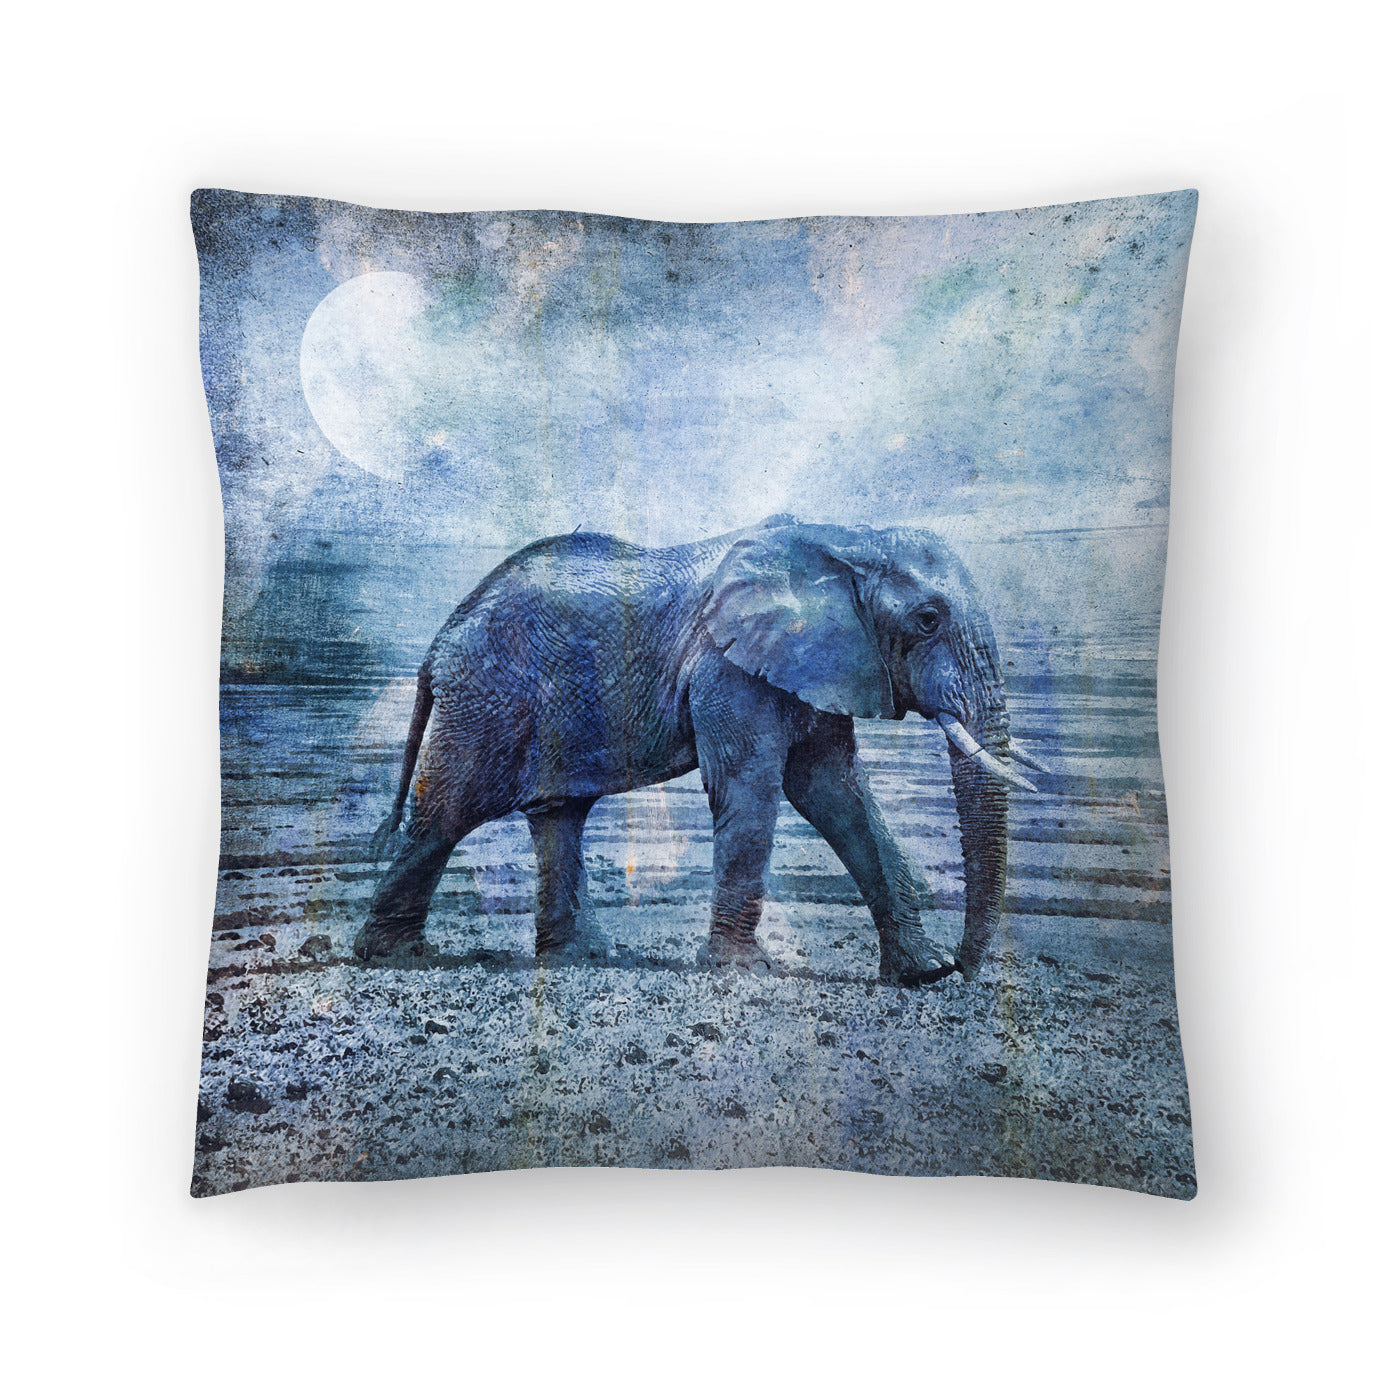 Lonely Elephant by Lebens Art Decorative Pillow - Decorative Pillow - Americanflat